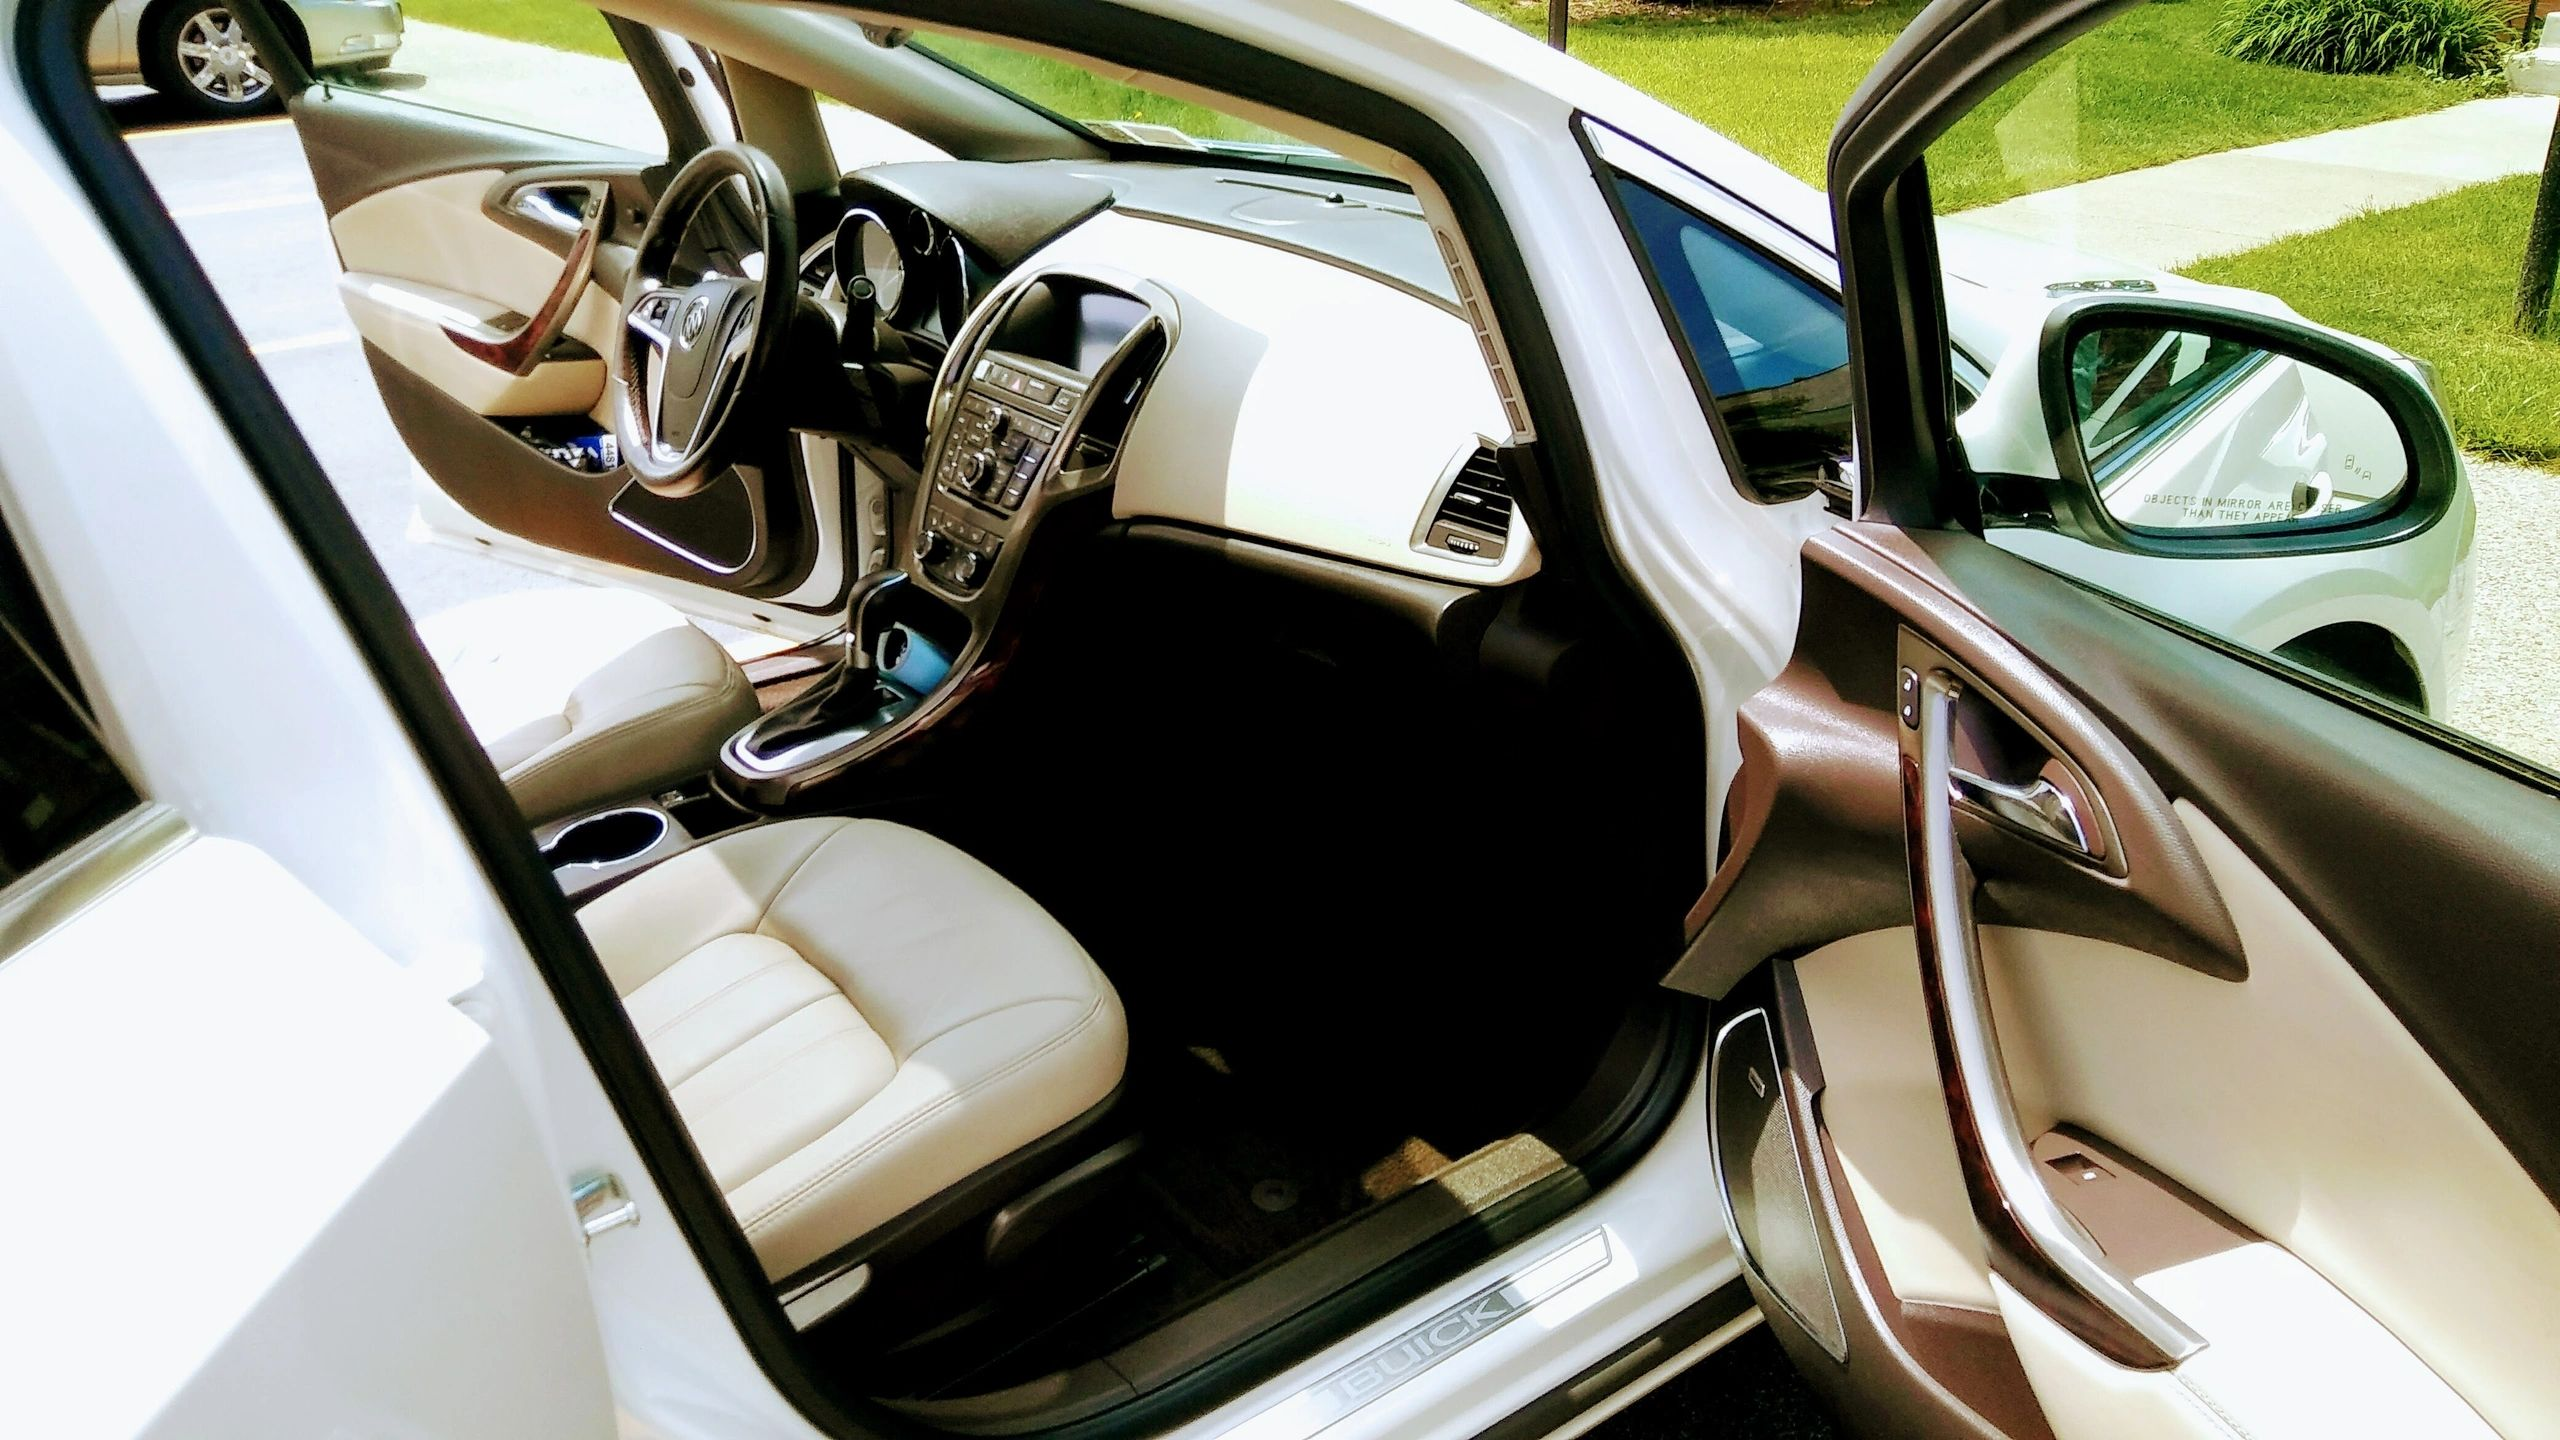 campbelldetailing auto detailing in rochester car detailing campbelldetailing. Black Bedroom Furniture Sets. Home Design Ideas